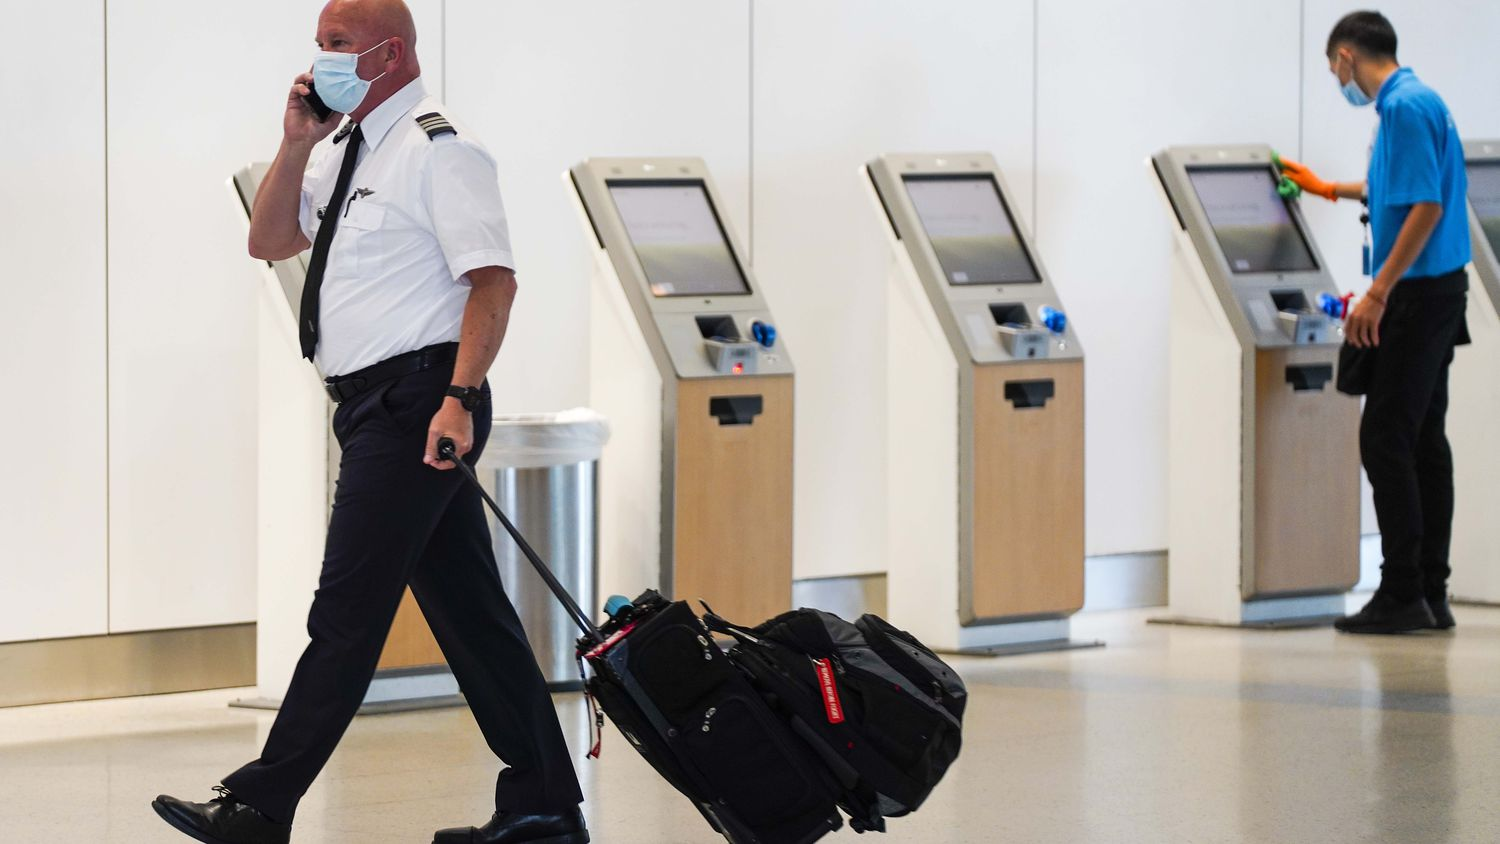 An American Airlines pilot walked past as airport contractor David Ramirez wiped down check-in kiosks with disinfectant at DFW International Airport Terminal A in 2020.